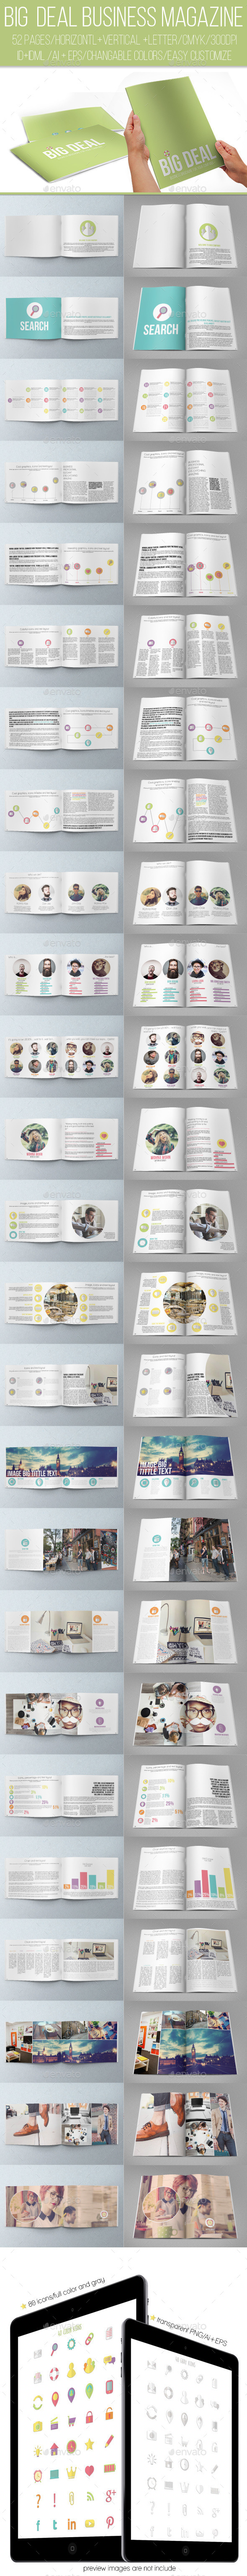 GraphicRiver Big Deal Business Magazine 11968924